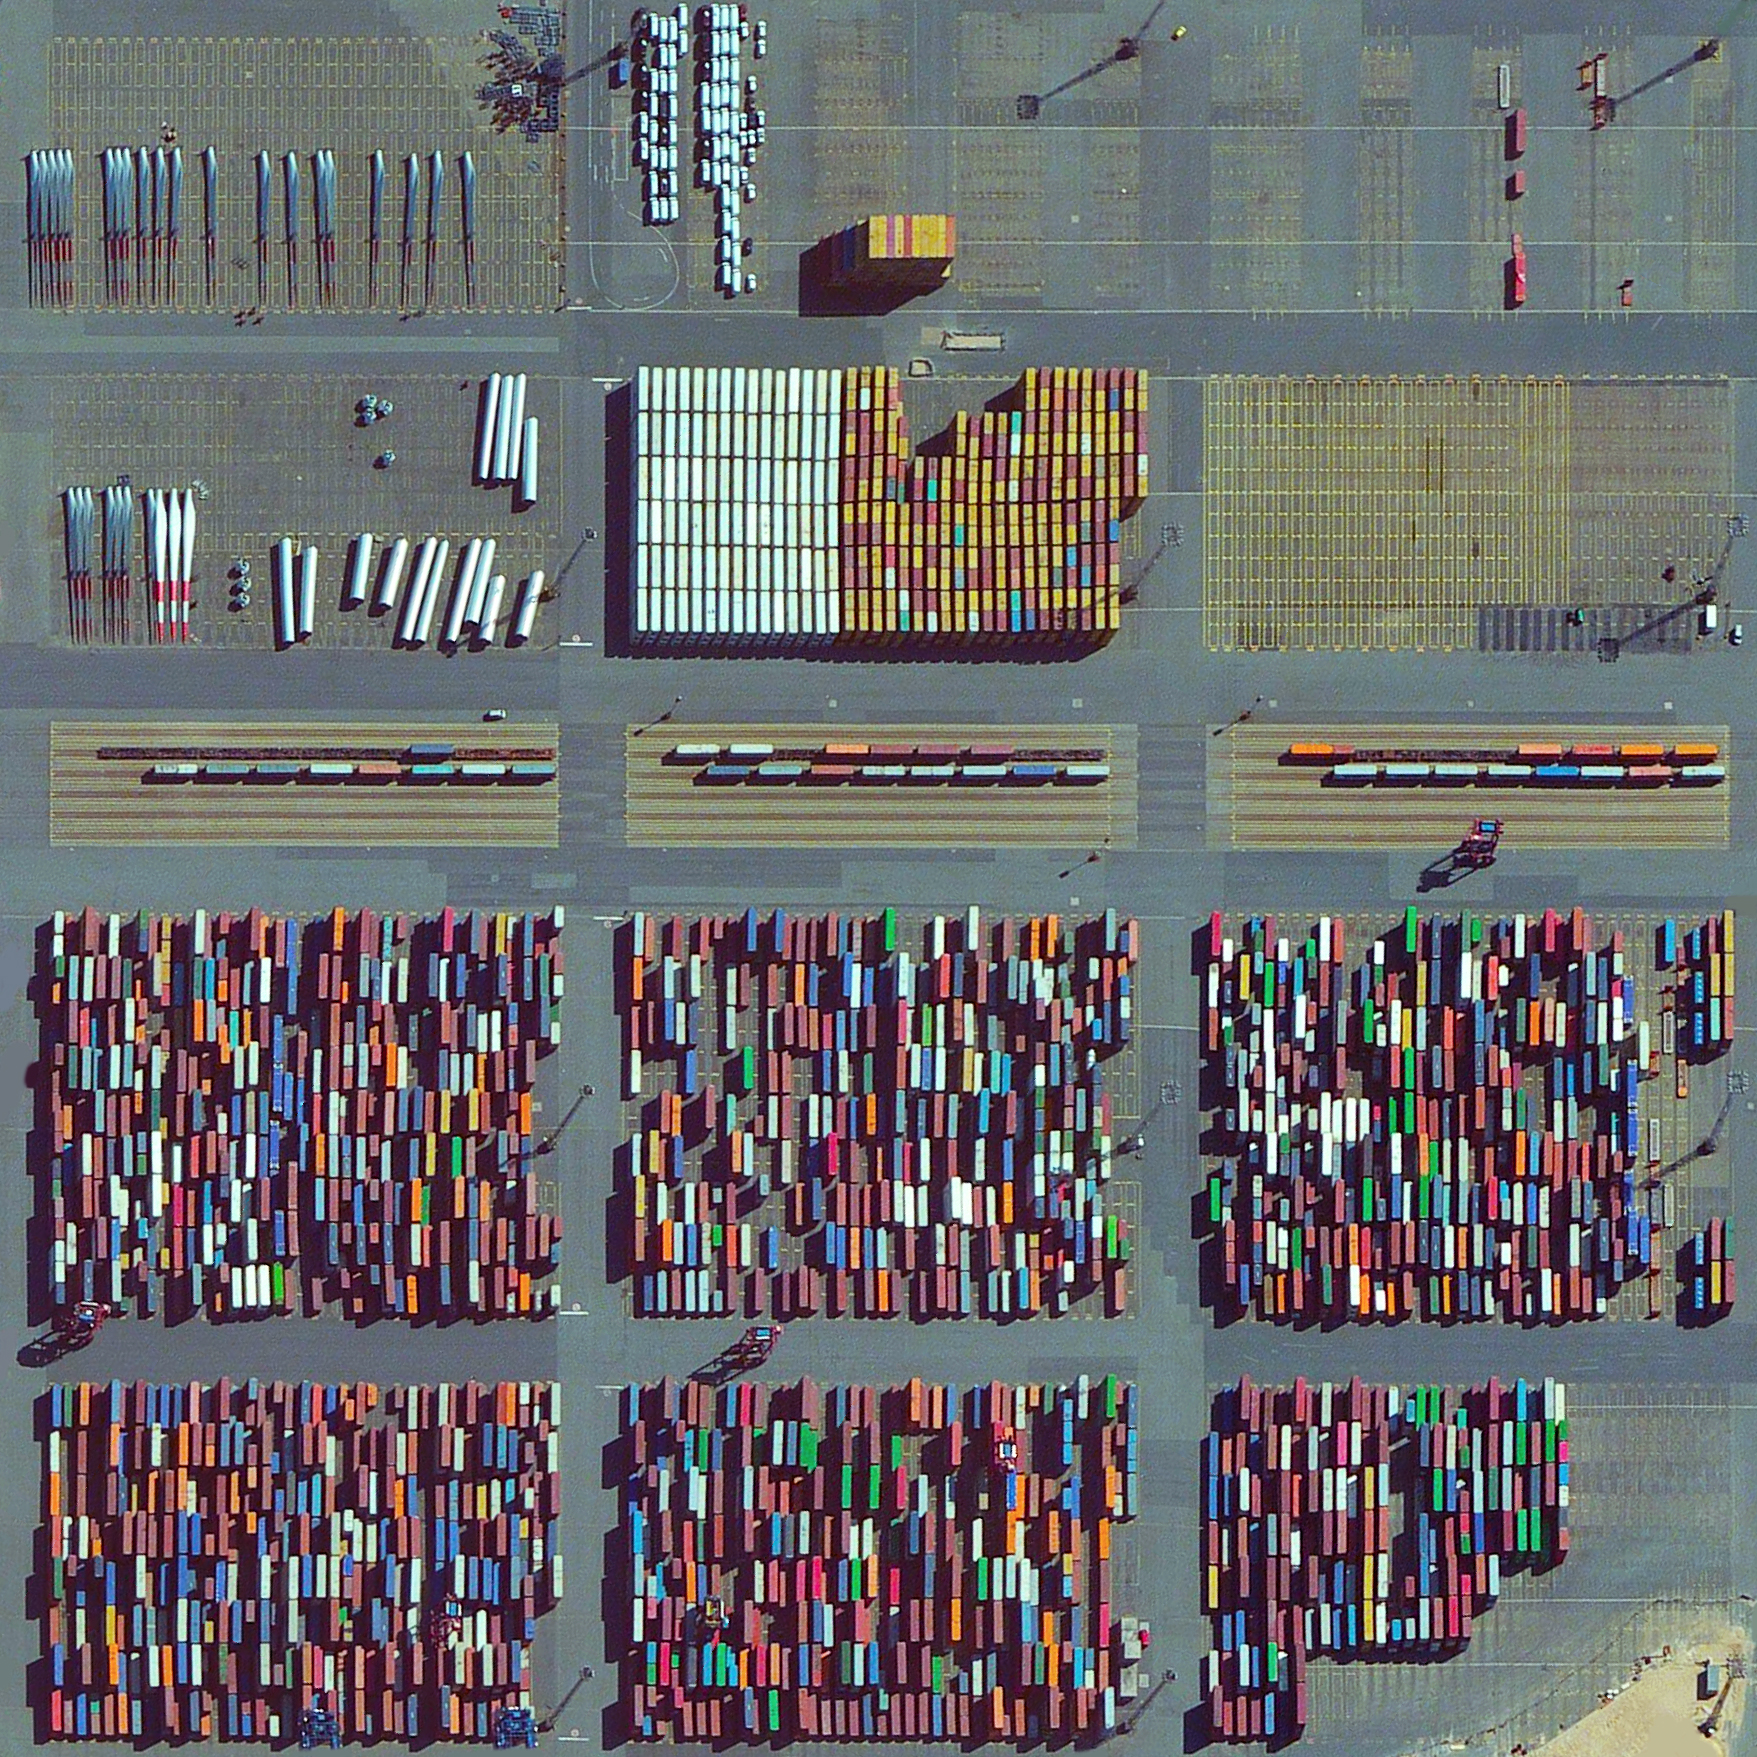 8/30/2015   Bremerhaven Port   Bremen, Germany  53.584444960°, 8.536846512°    Thousands of items including shipping containers, wind turbine blades, and automobiles are prepared for transport at the Bremerhaven Port in Bremen, Germany. At any given moment, the port contains between 60,000 and 80,000 vehicles and it serves as the 23rd busiest port in the world with 5,831 thousand TEU's moved each year. With this post we'll be signing off on vacation for the week and look forward to more posts when we get back!